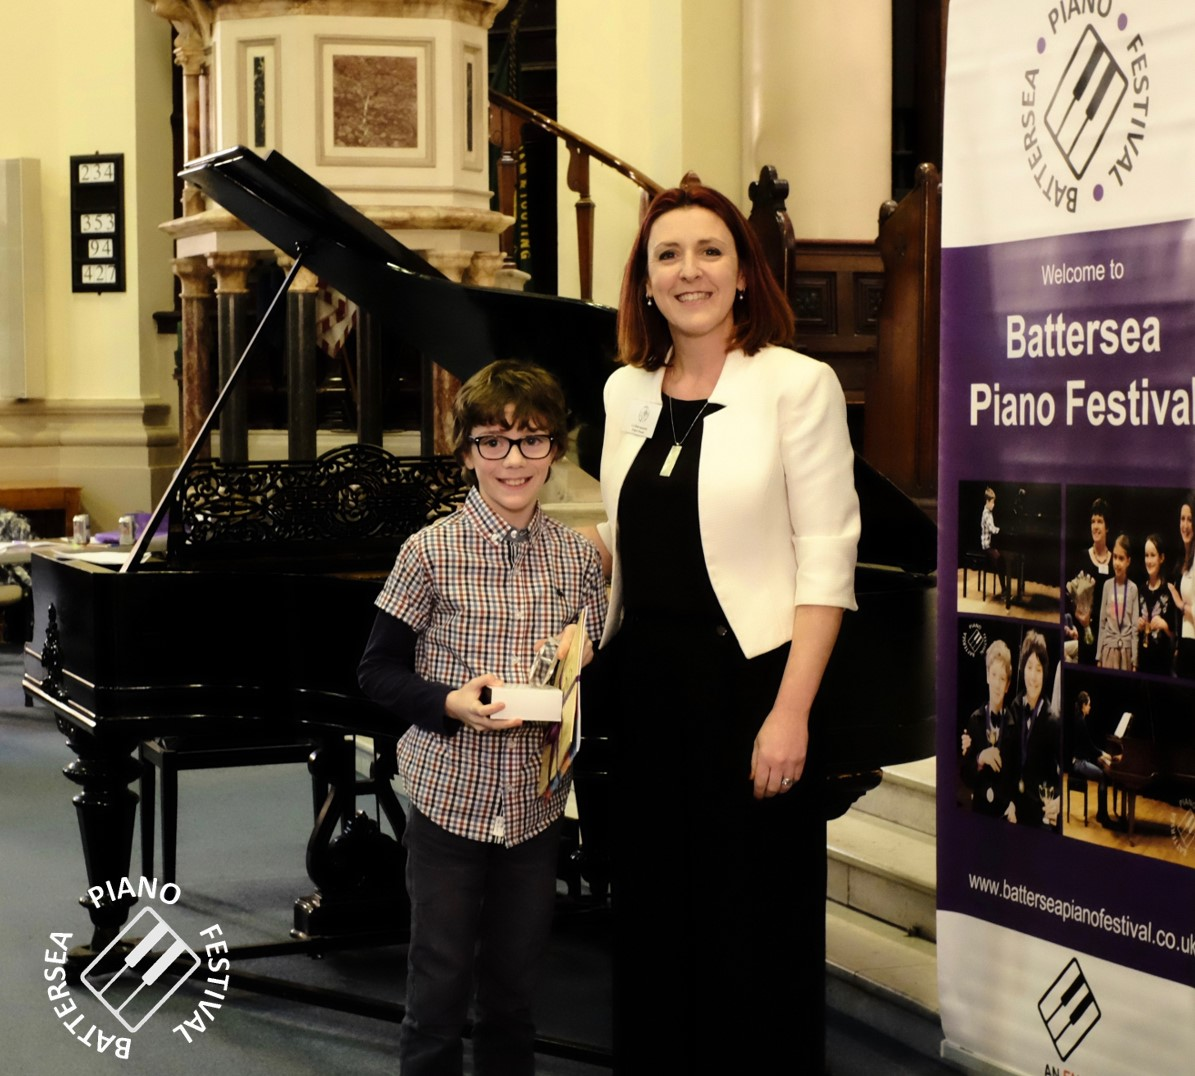 Piano Festival | Battersea Piano Fes